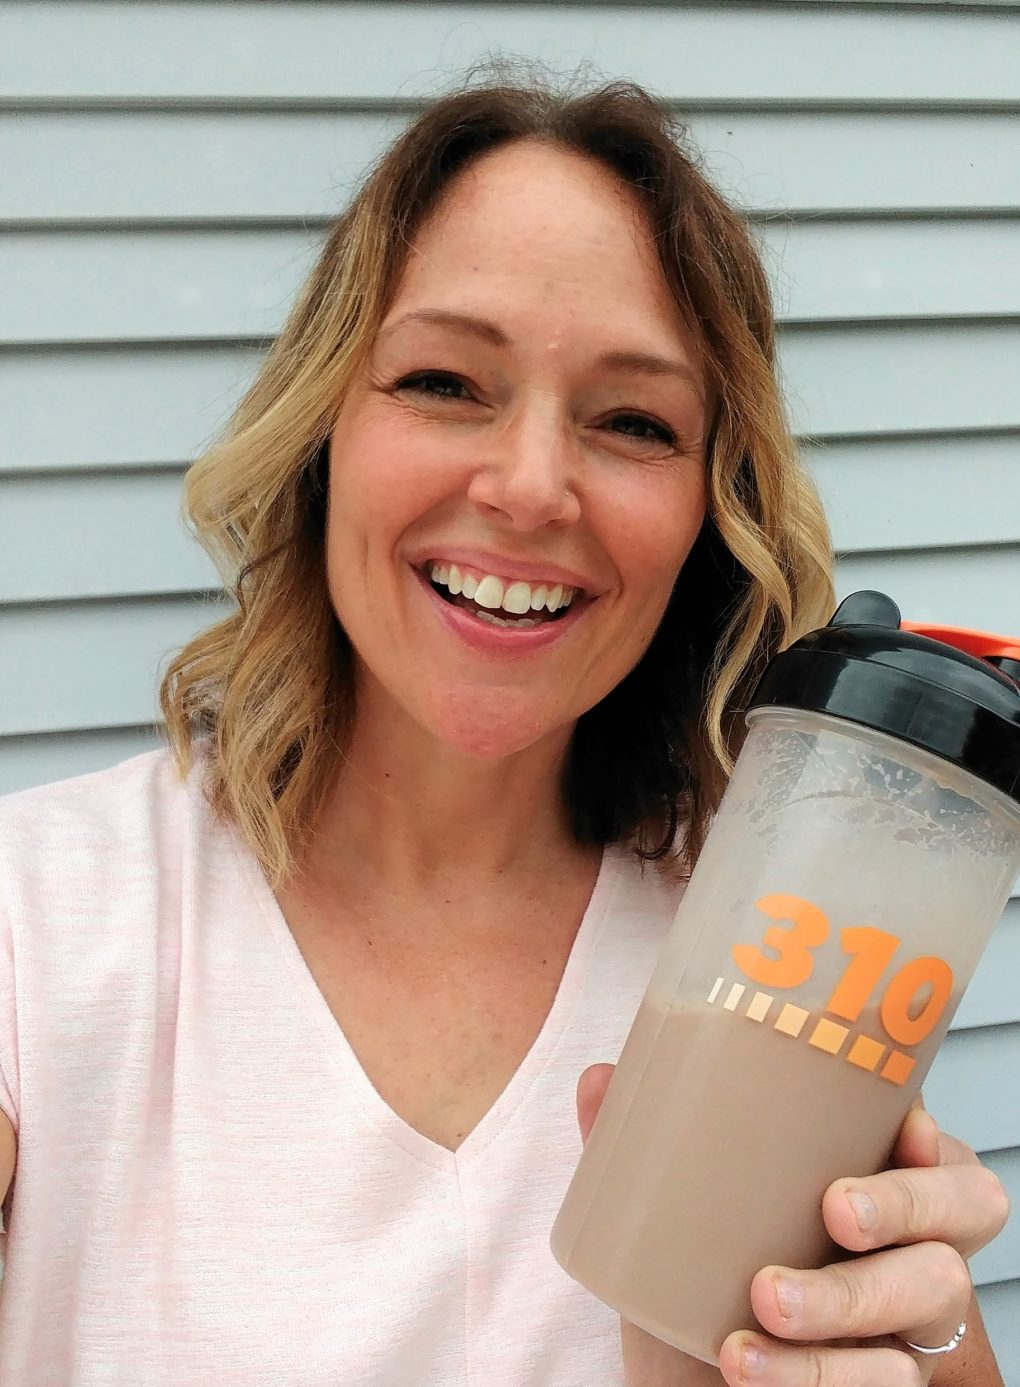 310 Nutrition 310 Shakes Chocolate Shake Review